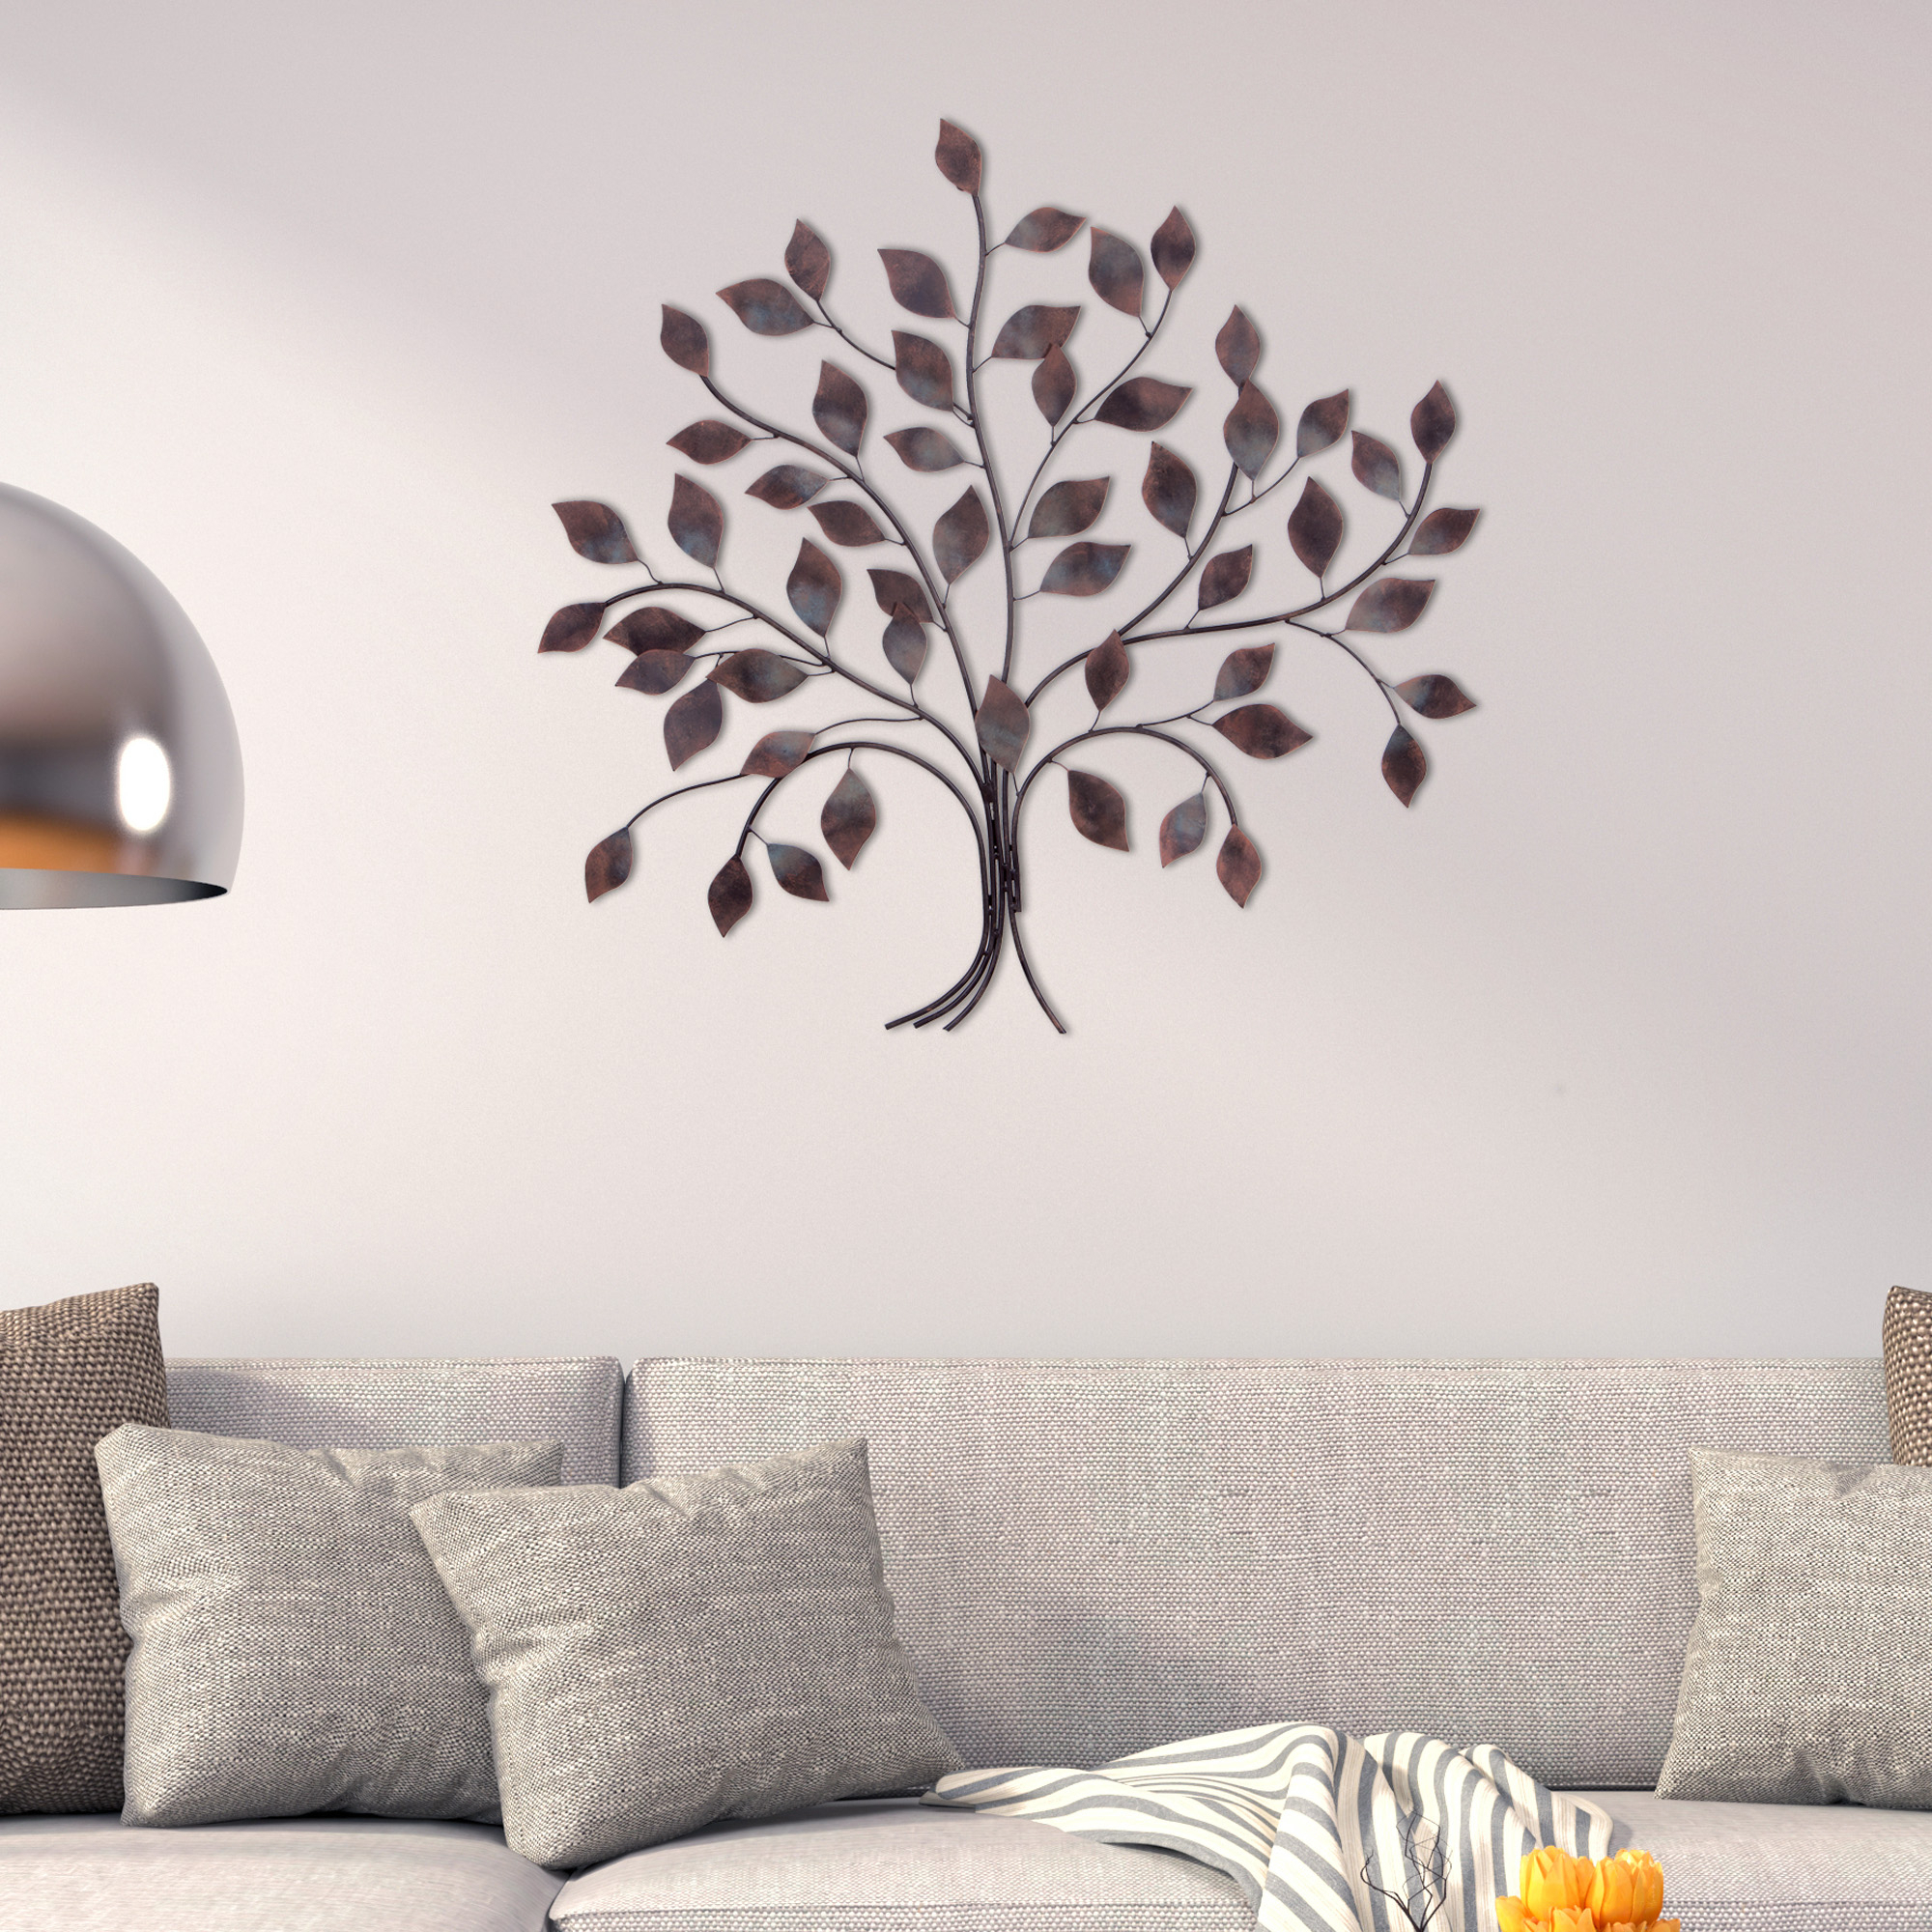 Patton Wall Decor Bronze Tree Branch Decorative Metal Wall Décor With Latest Tree Wall Decor (Gallery 9 of 20)